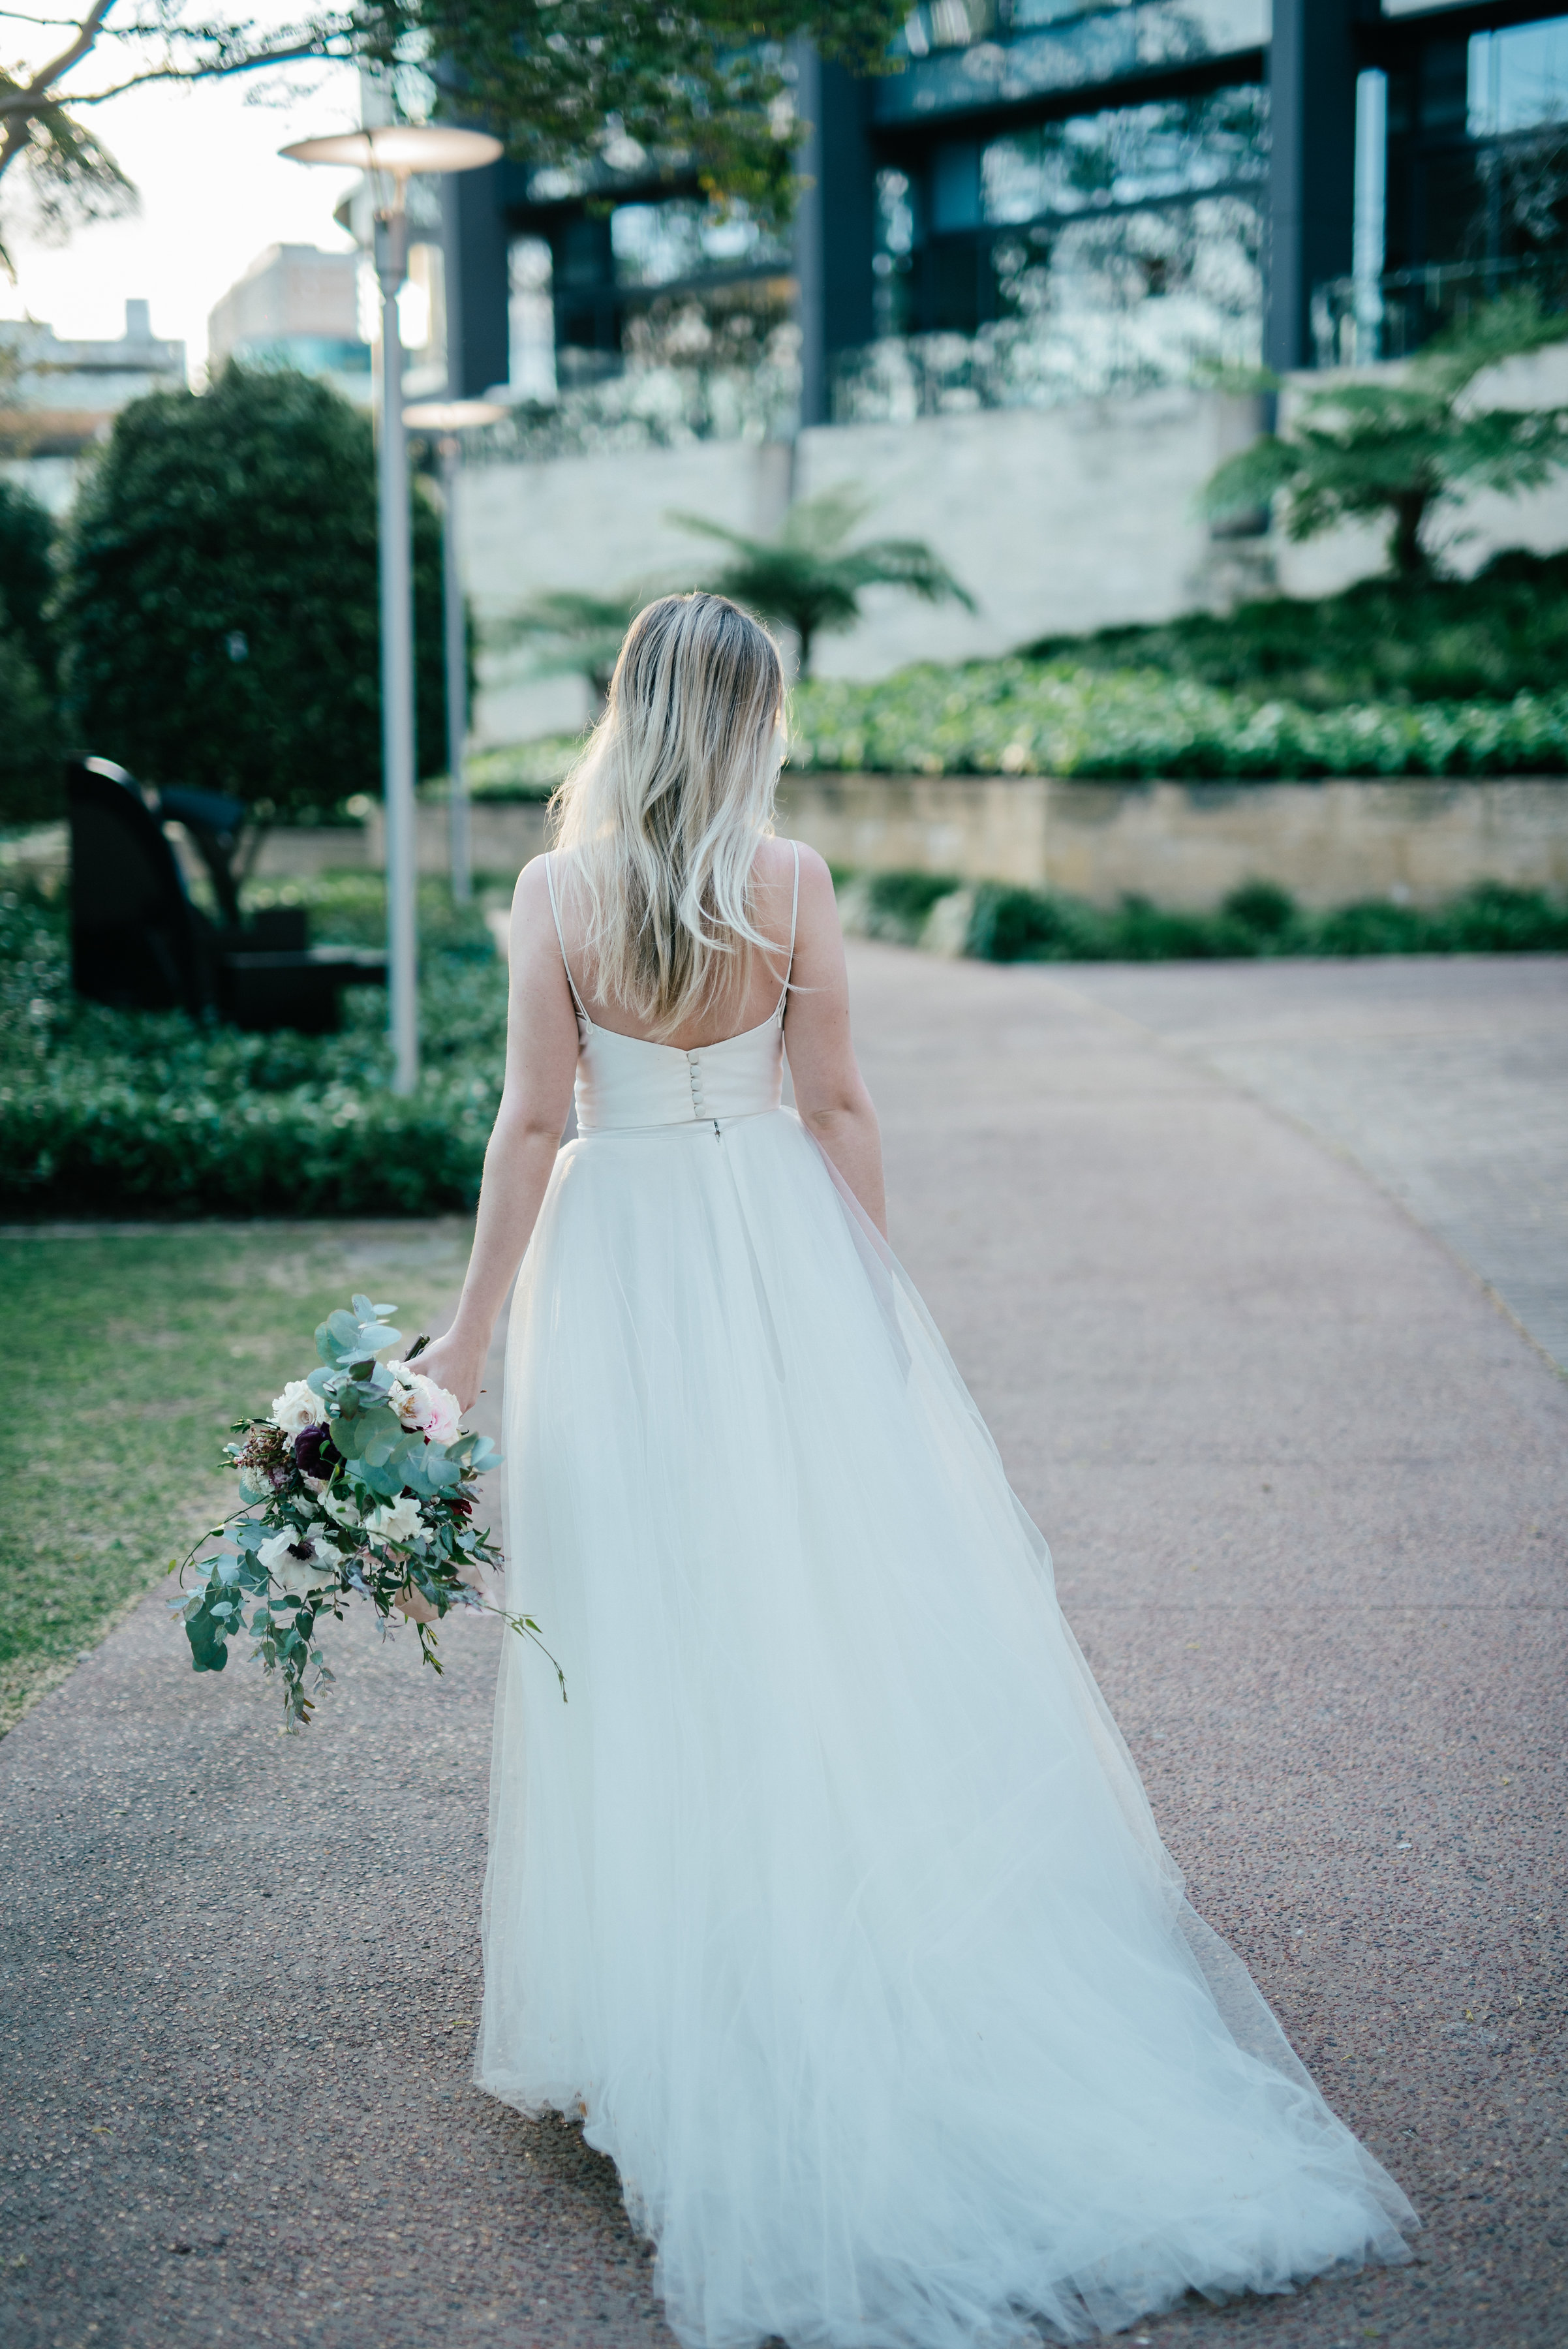 Model Courtney wears a Karen Willis Holmes gown with simple bodice and full tulle skirt finished with lace.